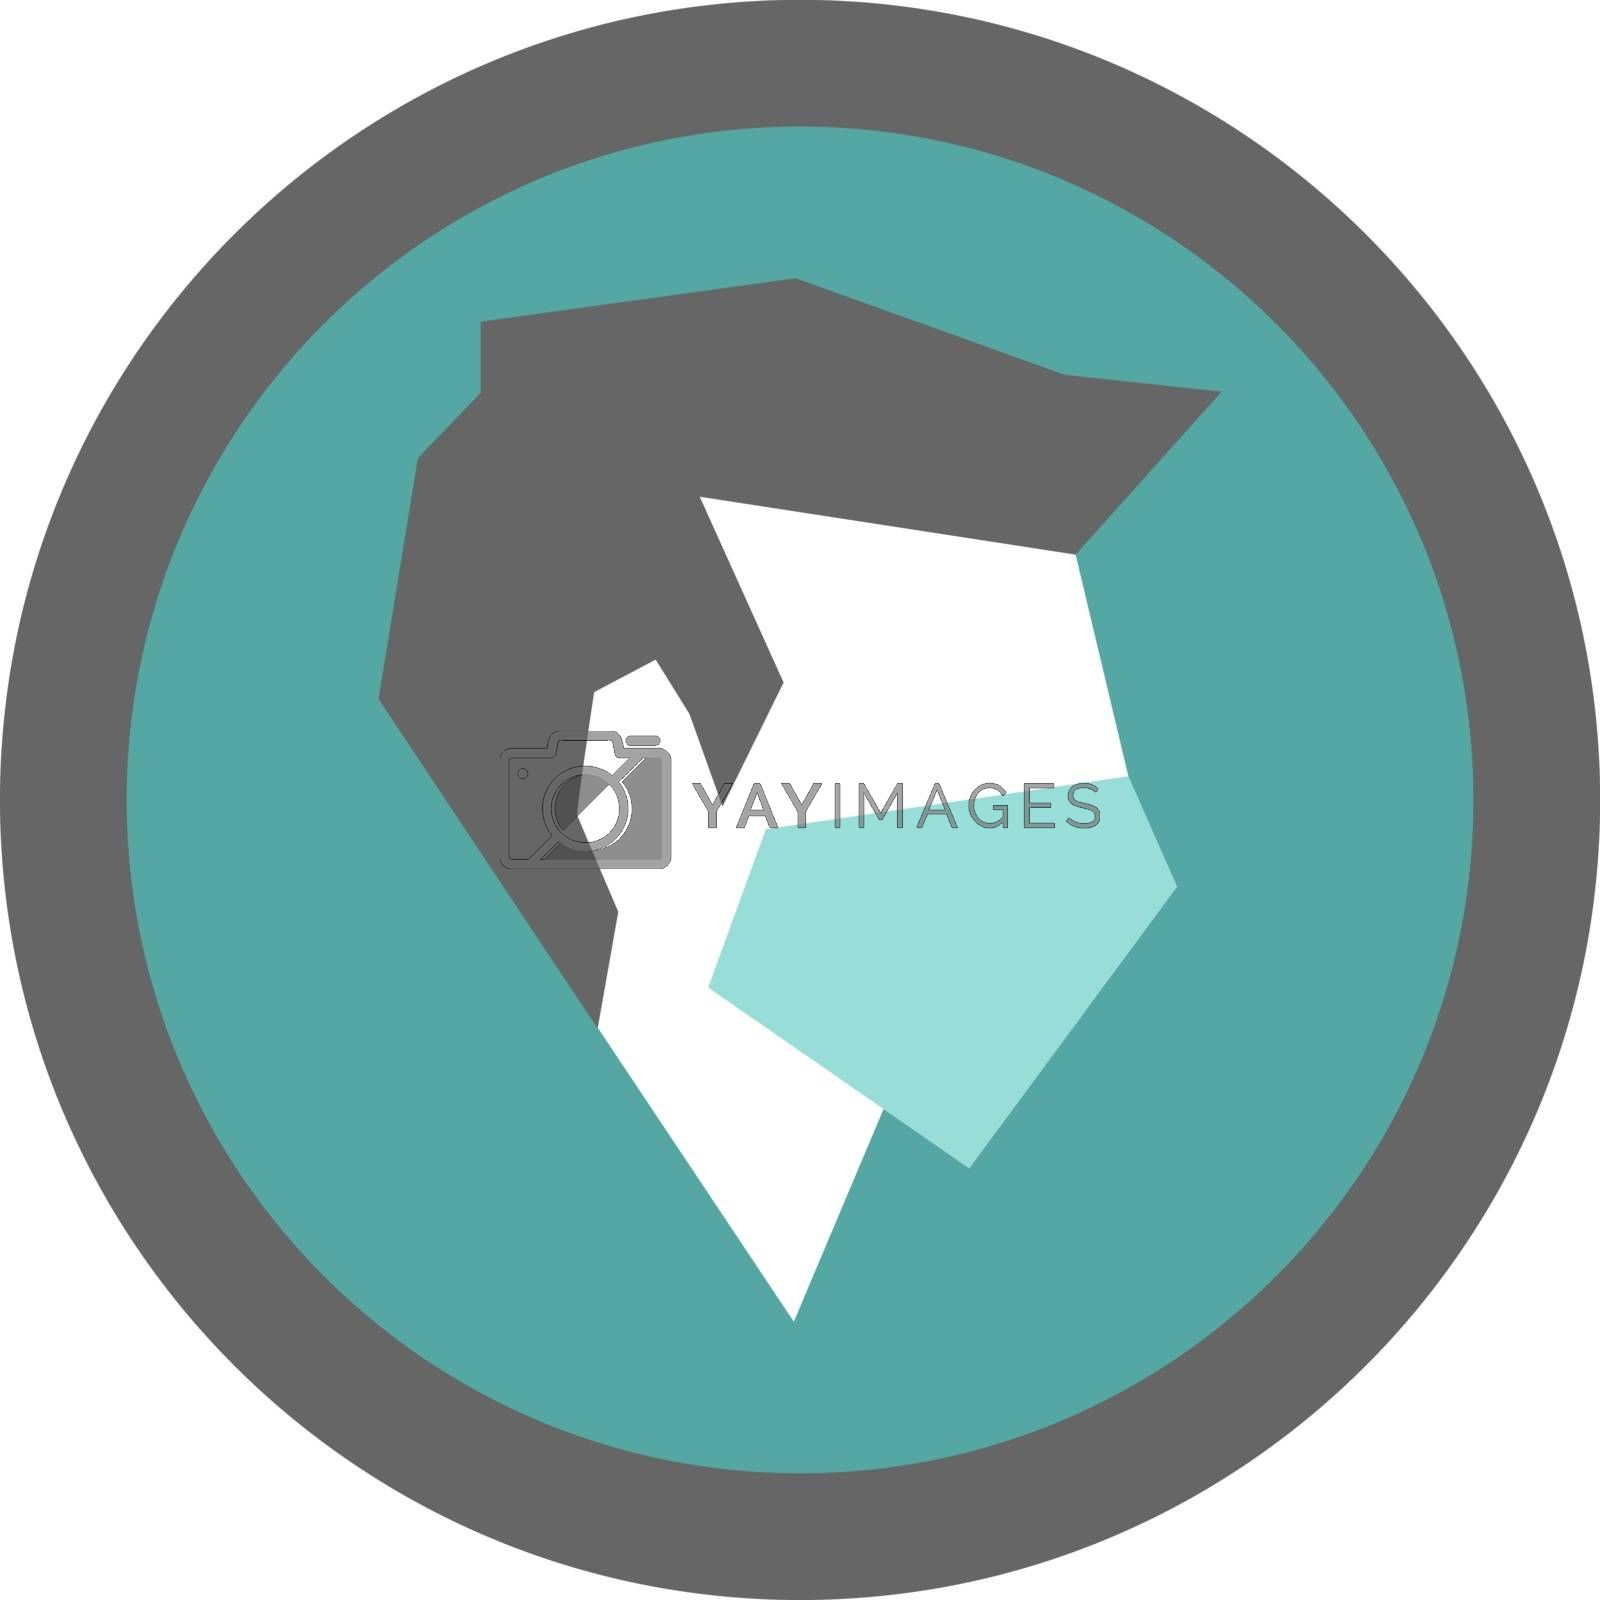 Simple minimalist modern icon with profile of faceless man wearing medical mask